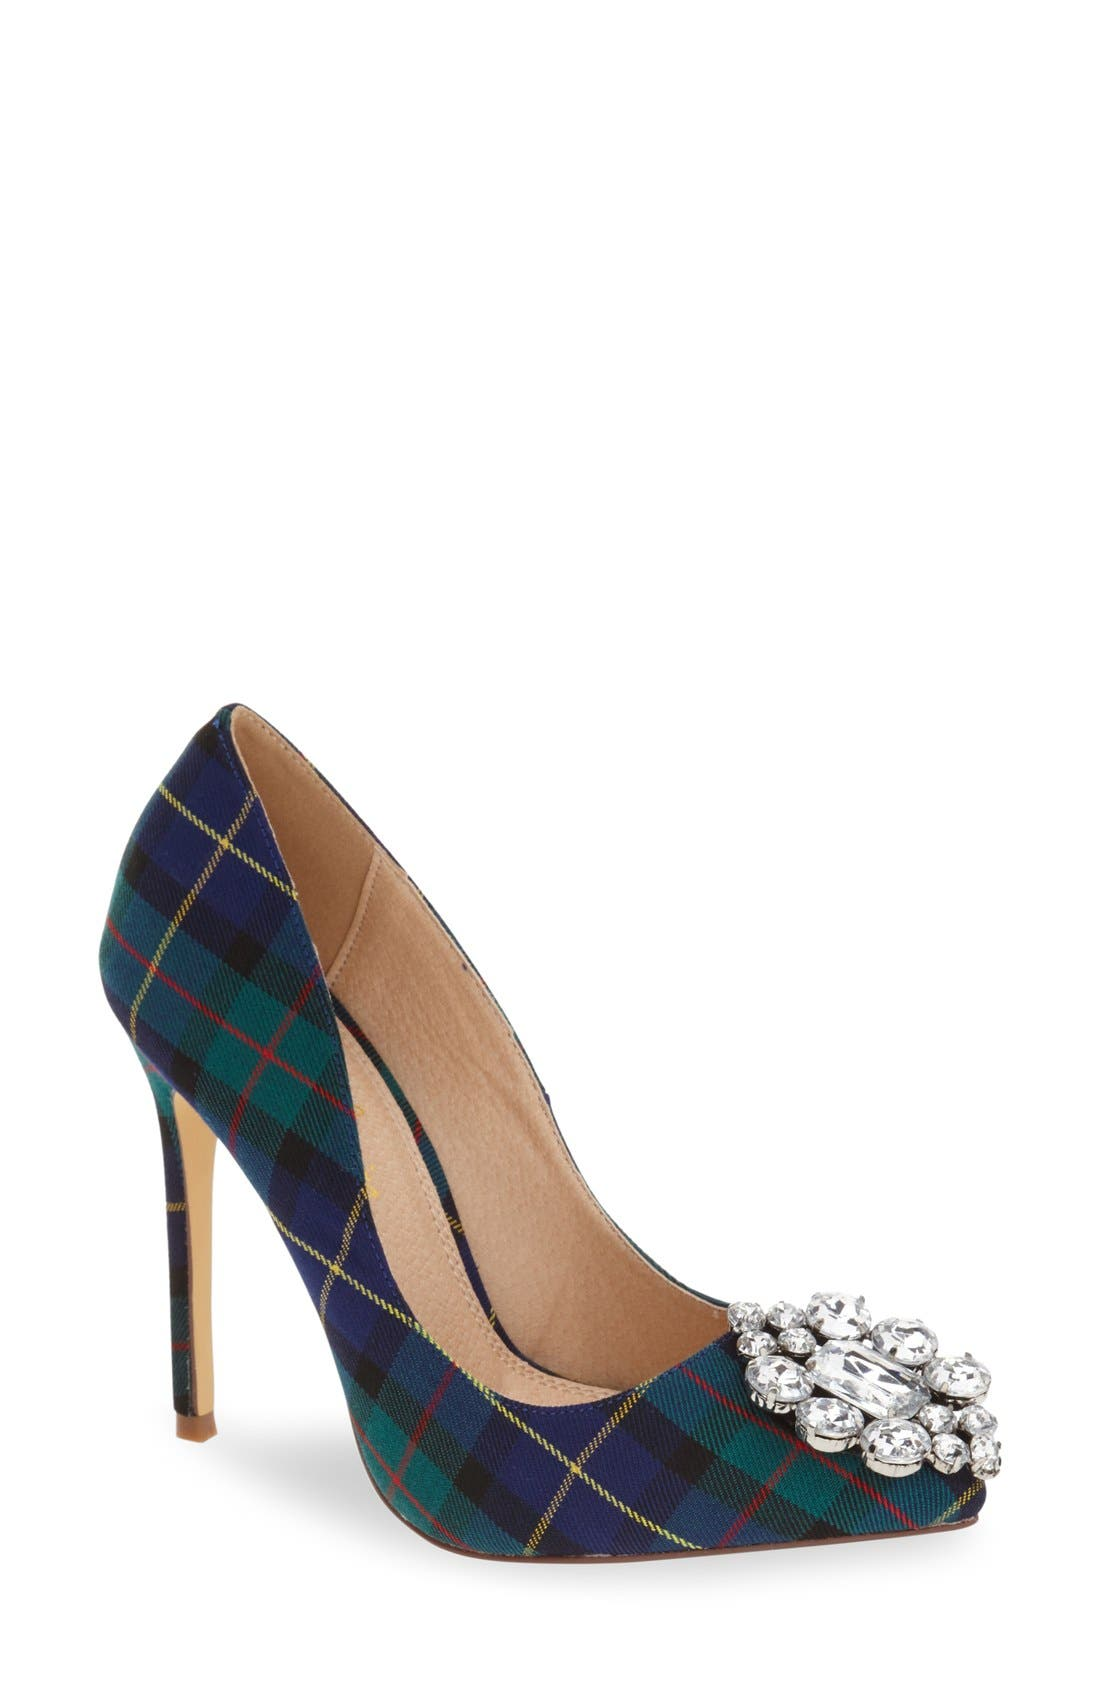 LAUREN LORRAINE Crystal Pointy Toe Pump